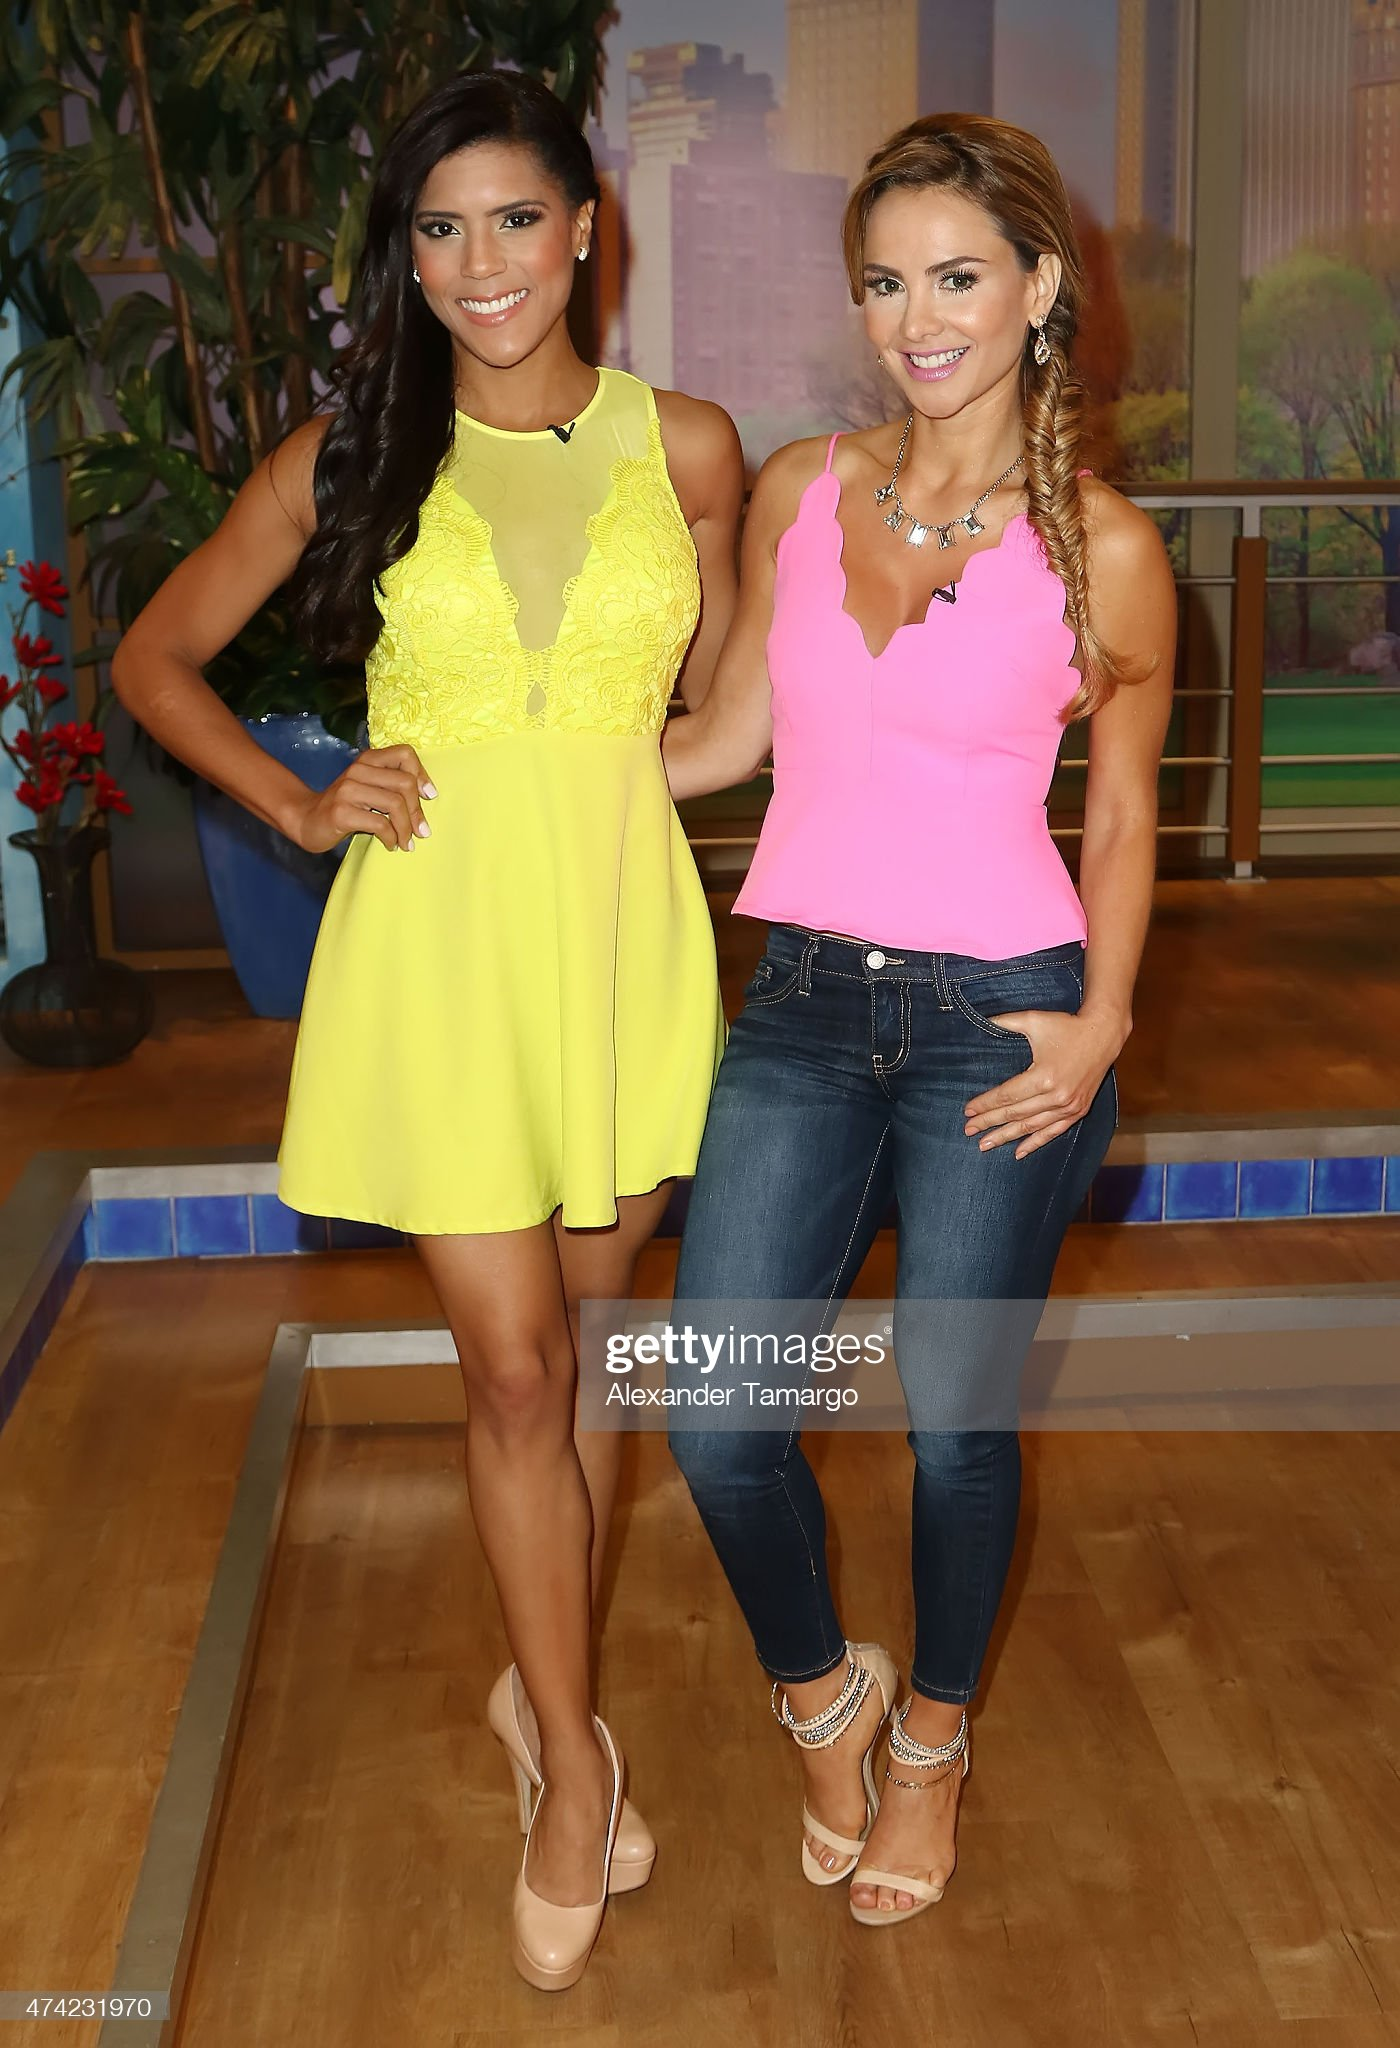 ¿Cuánto mide Ximena Córdoba? - Altura - Real height Francisca-lachapel-and-ximena-cordoba-are-seen-on-the-set-of-america-picture-id474231970?s=2048x2048